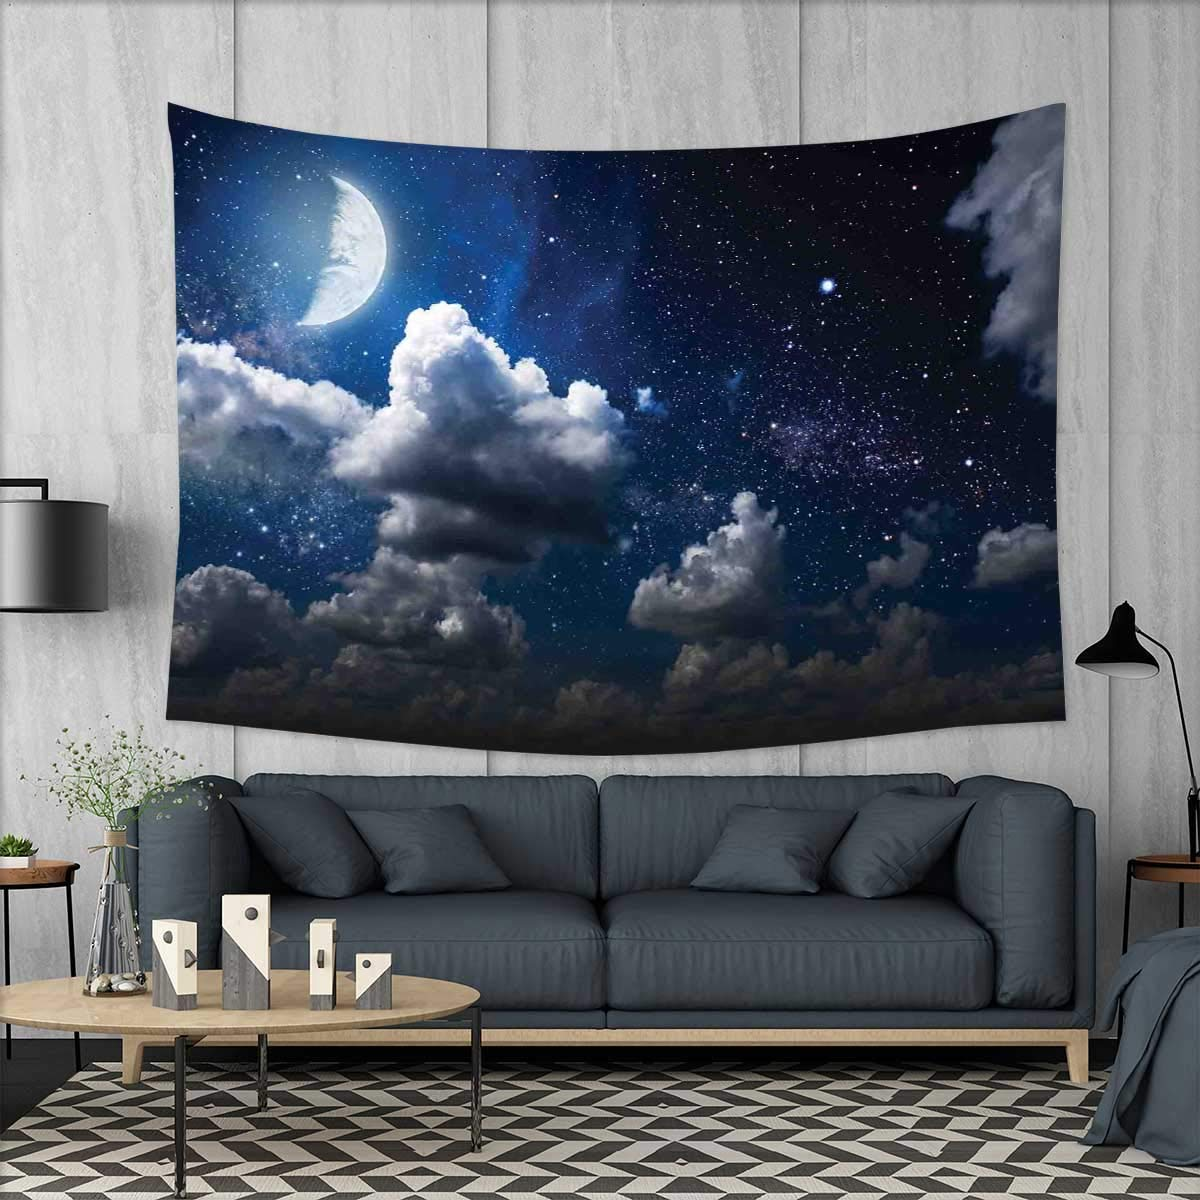 smallbeefly Clouds Tapestry Wall Tapestry Celestial Solar Night Scene Stars Moon and Clouds Heaven Place in Cosmos Theme Art Wall Decor 60''x51'' Dark Blue White